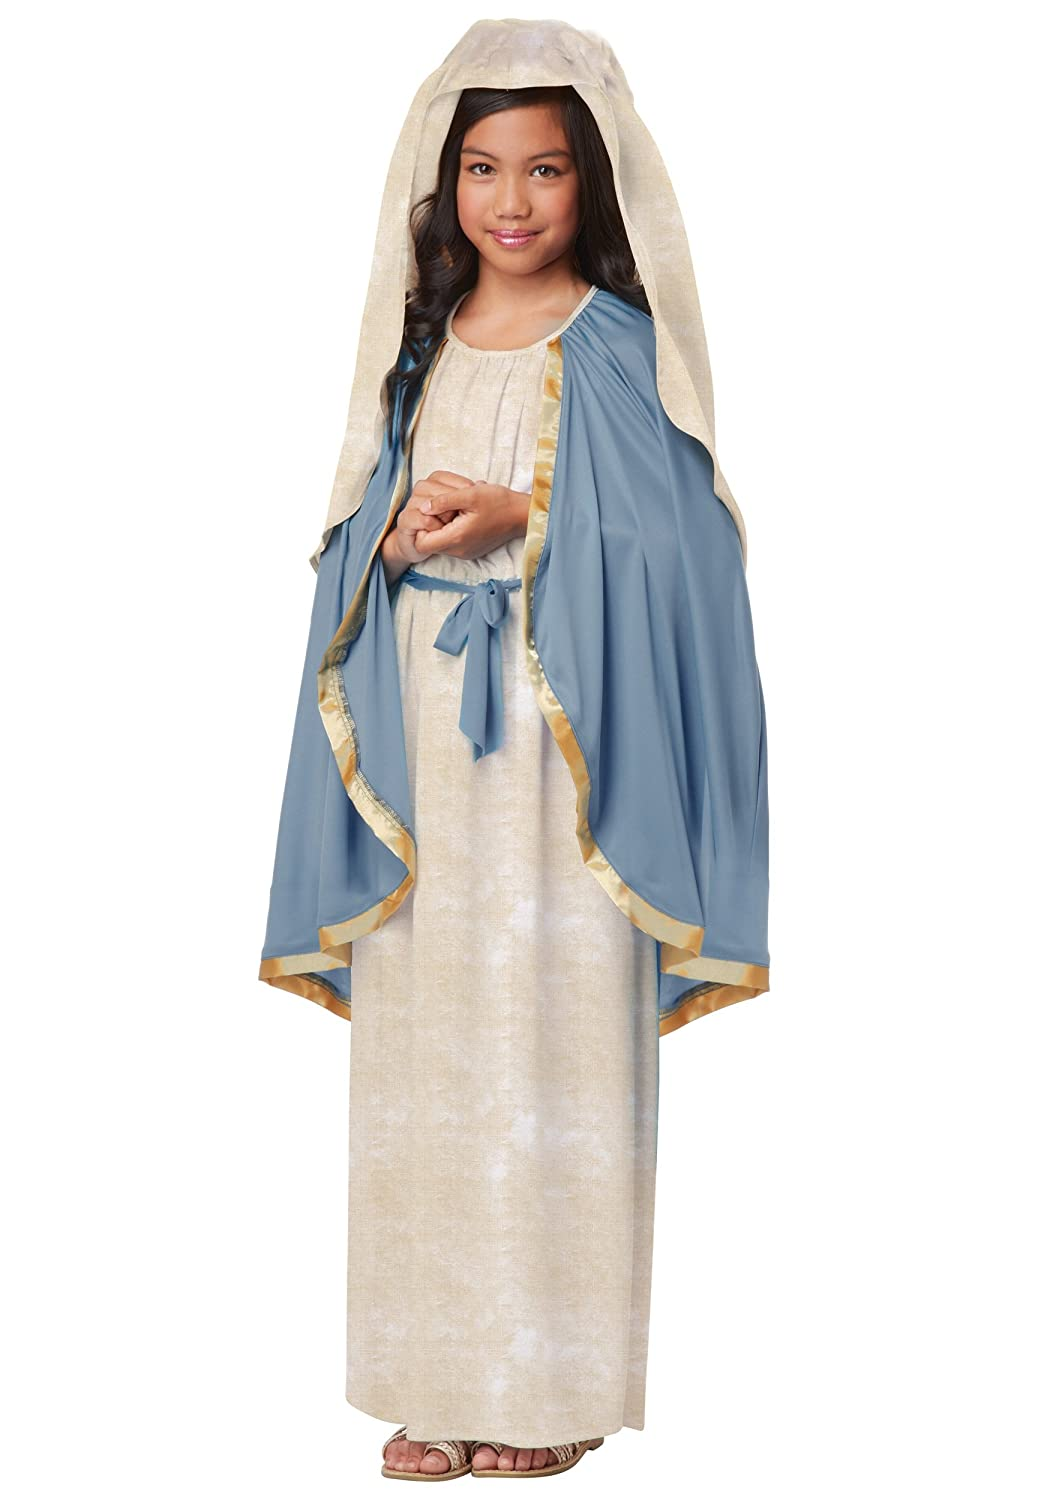 Small (68) Girls Virgin Mary Costume Small (68)